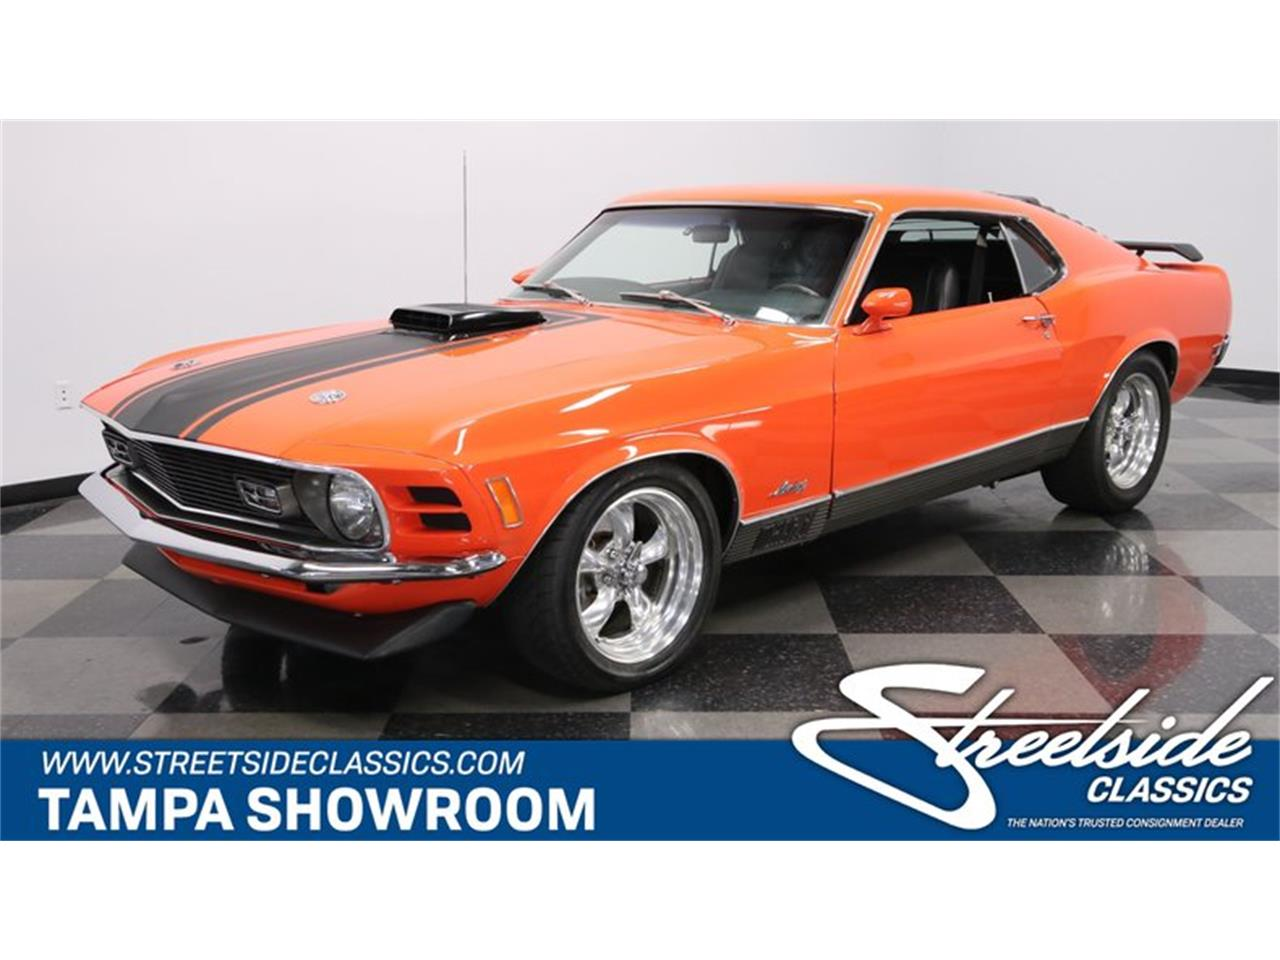 For Sale: 1970 Ford Mustang in Lutz, Florida